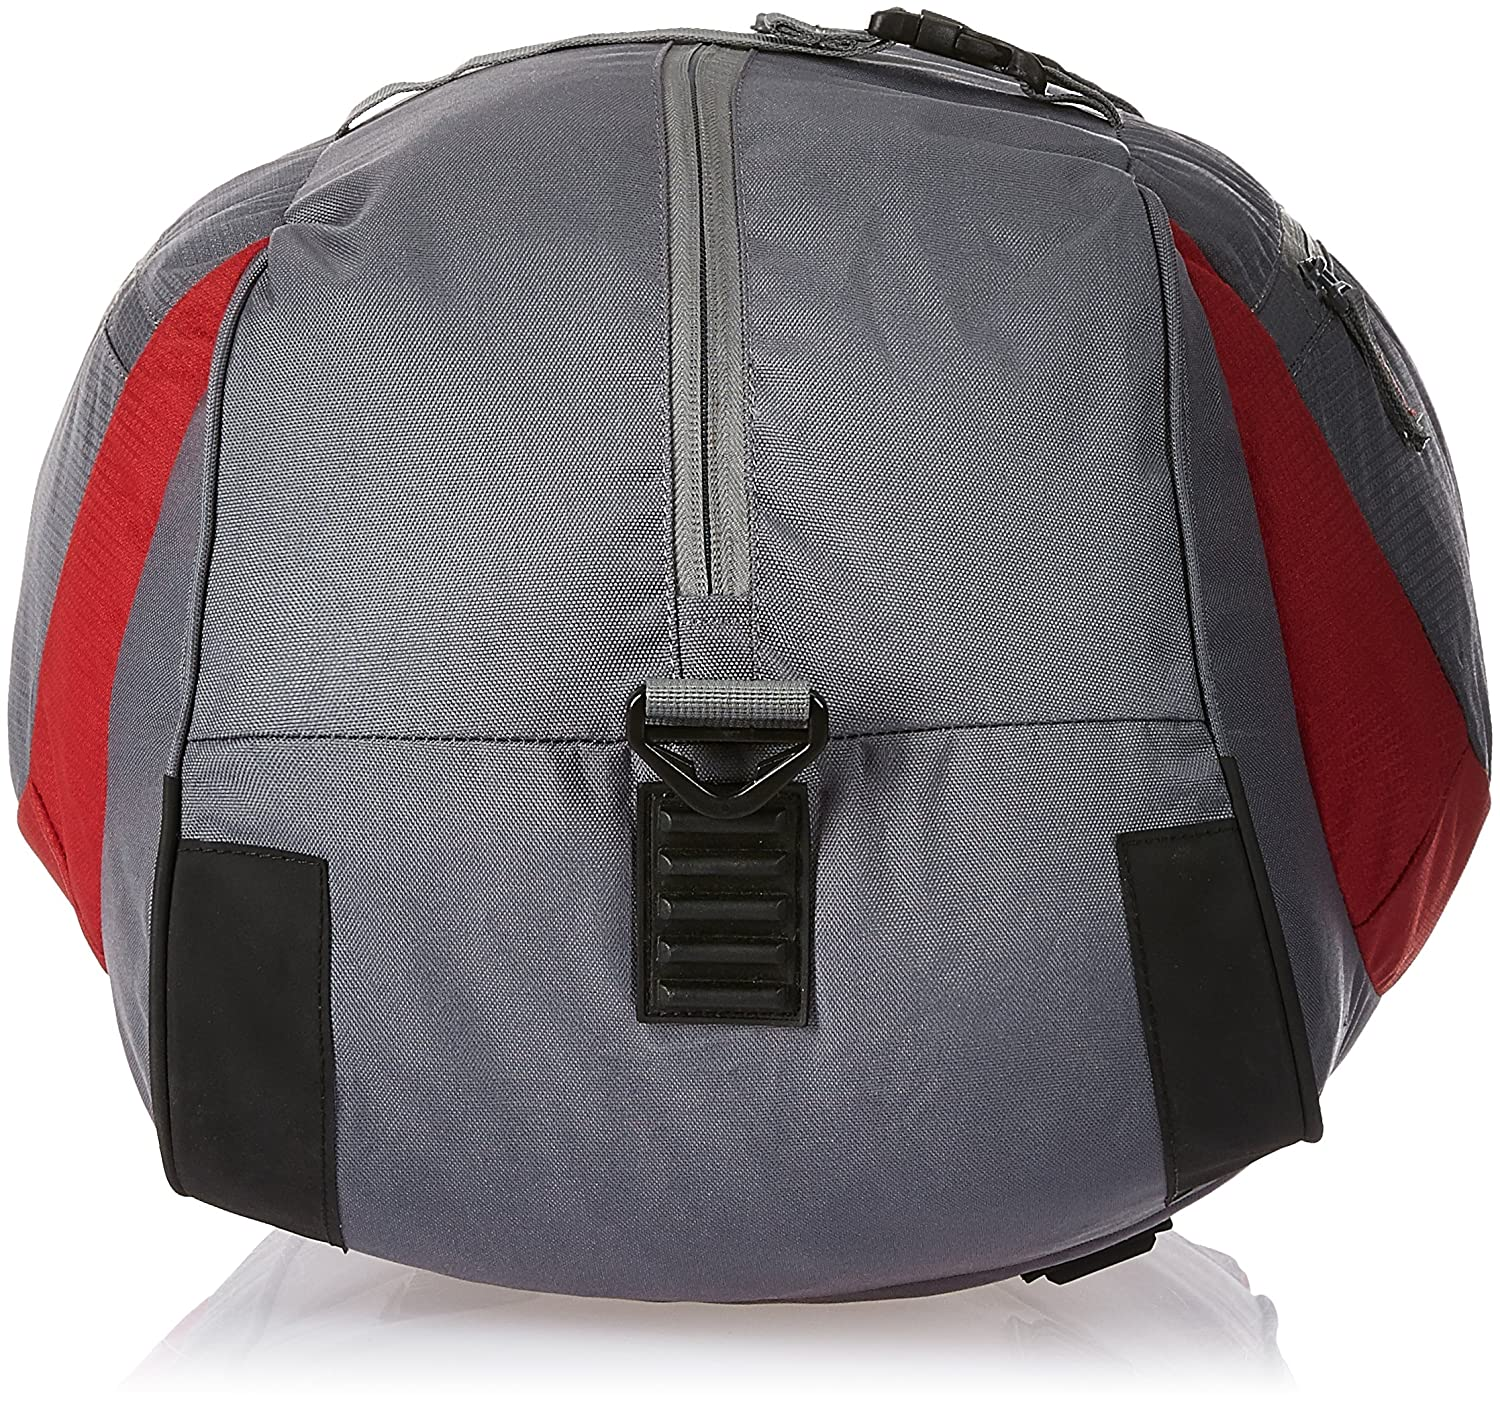 Wildcraft Rover Nylon 58.4 cms Red Softsided Travel Duffle (8903338010661)   Amazon.in  Bags d17e6b744f5ec